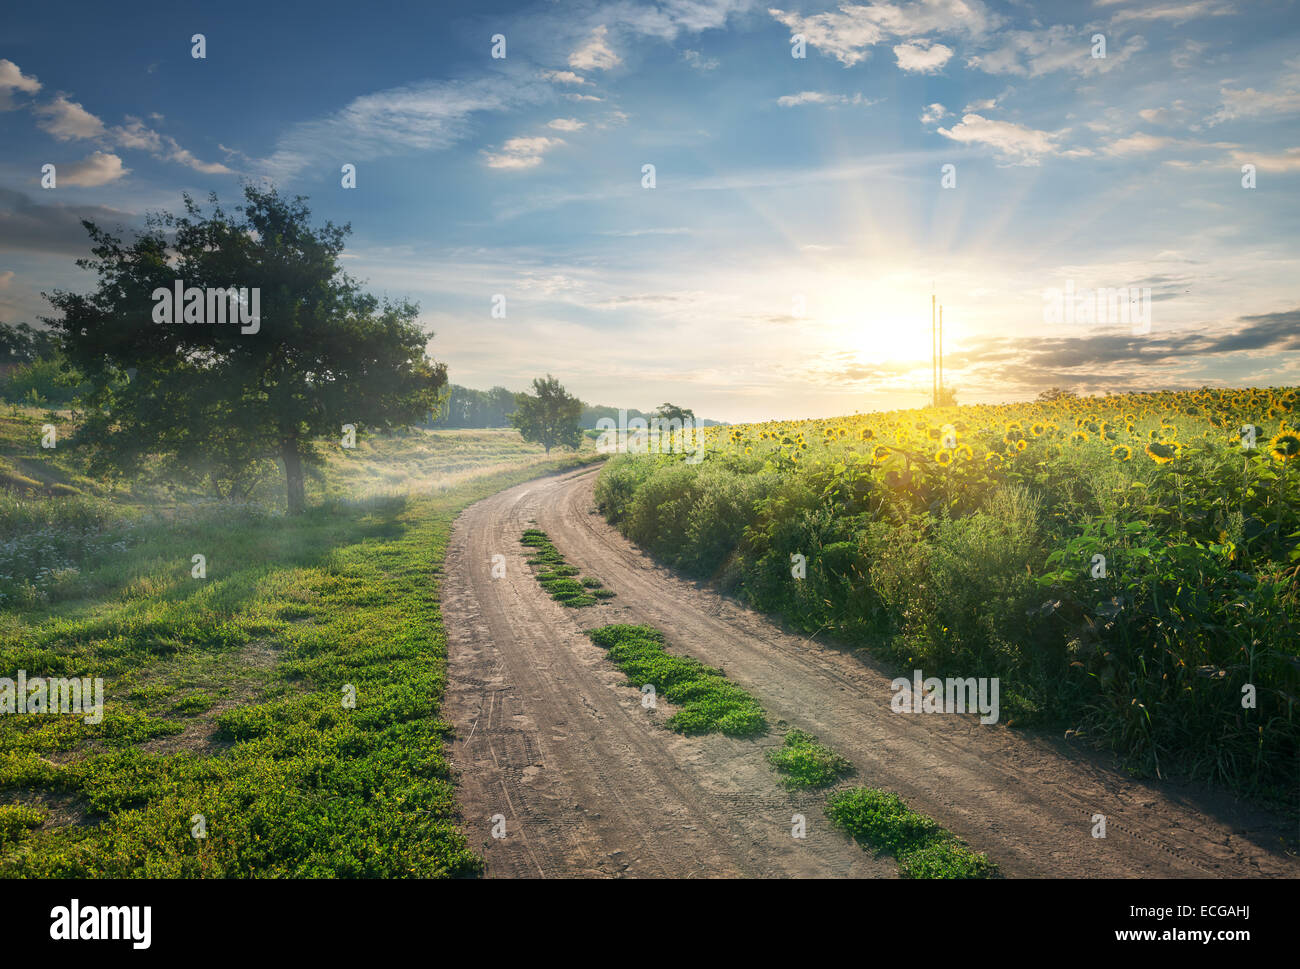 Country road near the field with sunflowers - Stock Image